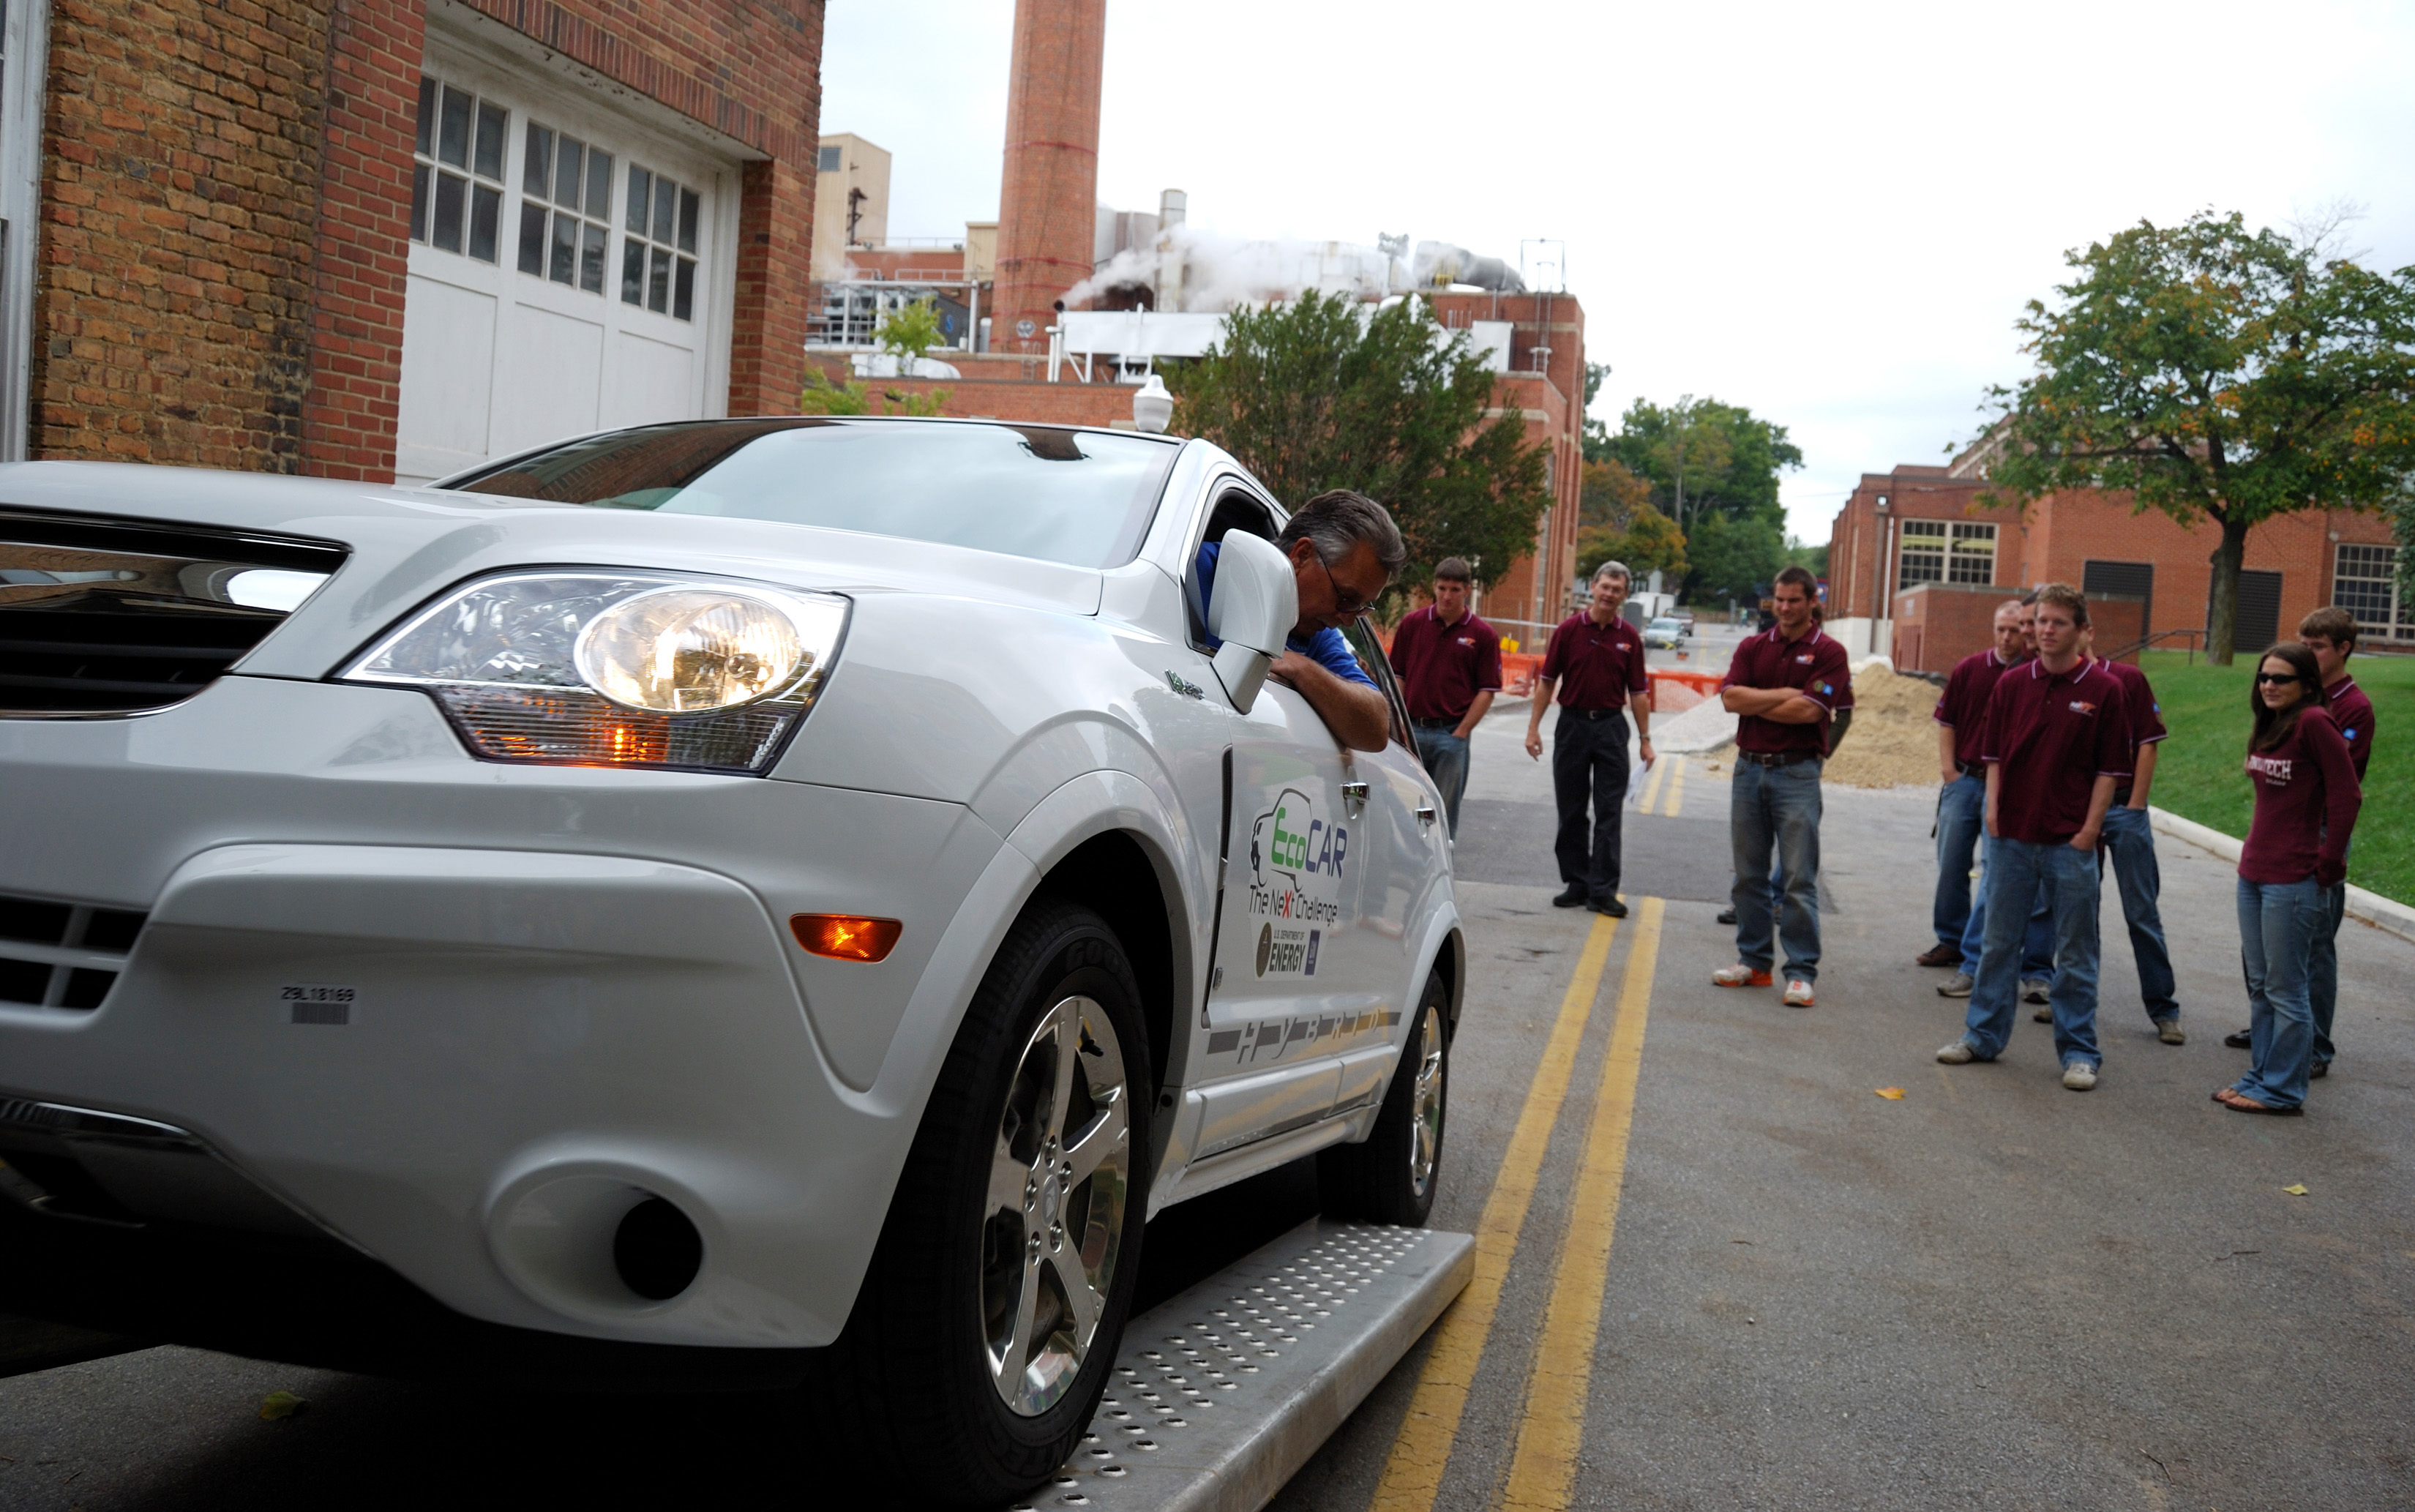 The 2009-10 Hybrid Electric Vehicle Team of Virginia Tech took delivery of a 2009 crossover SUV donated by General Motors this past fall.